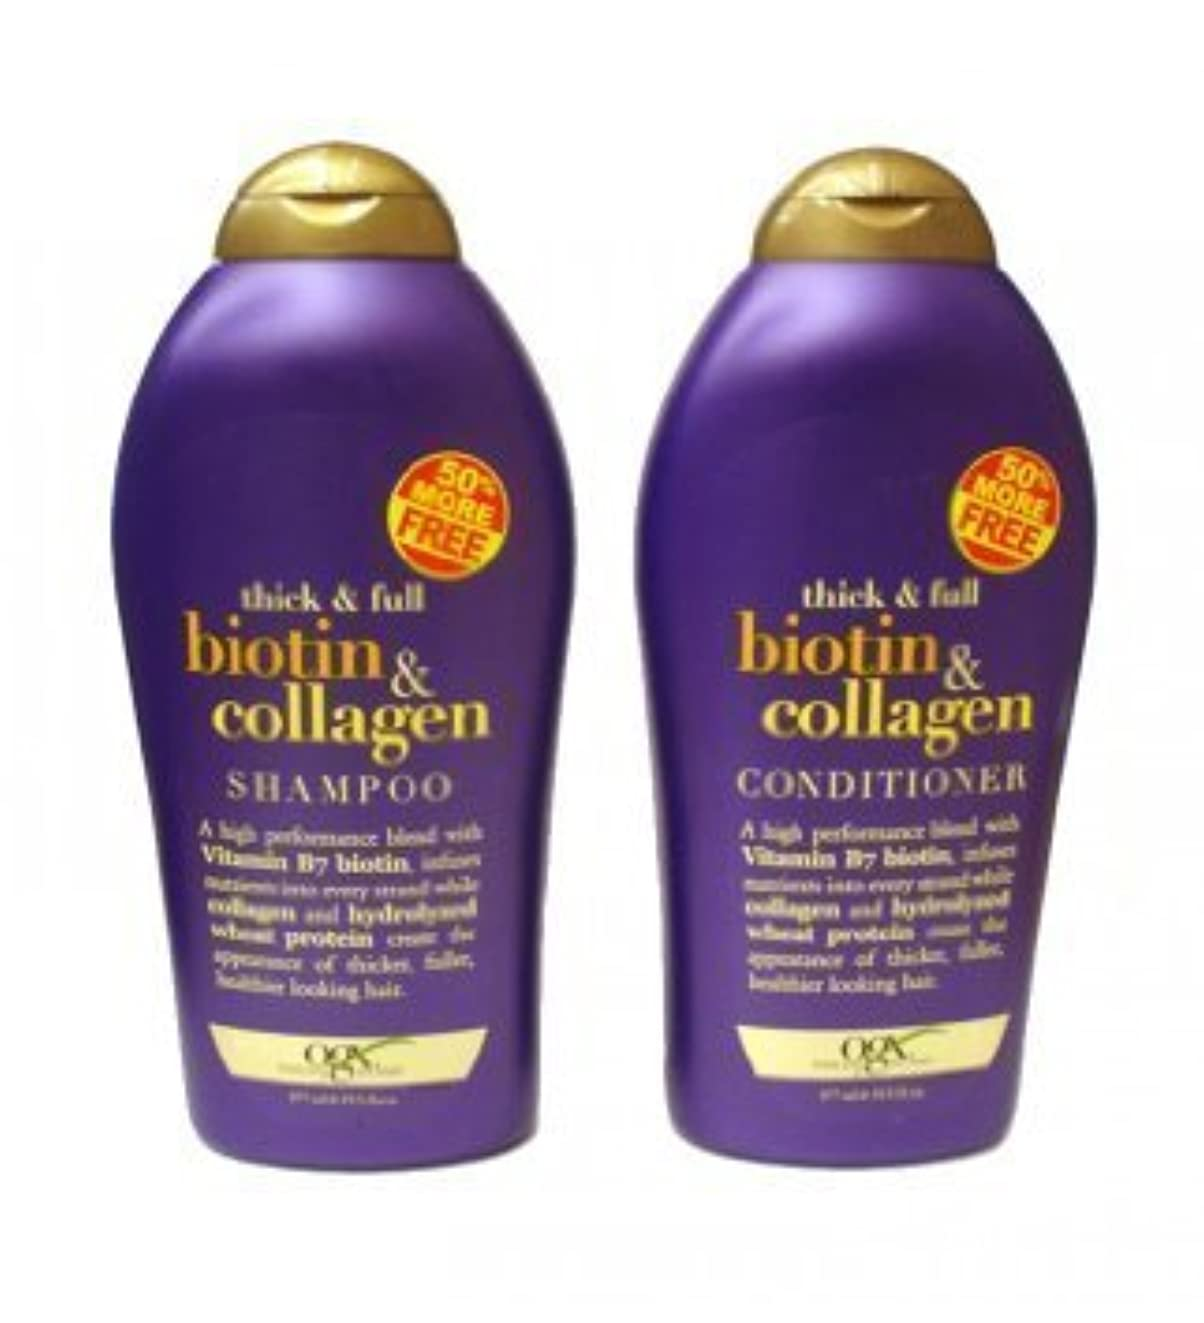 裁定原理隠OGX (Thick & Full) Biotin & Collagen Shampoo 19.5oz + Conditioner 19.5oz Duo-Set [並行輸入品]